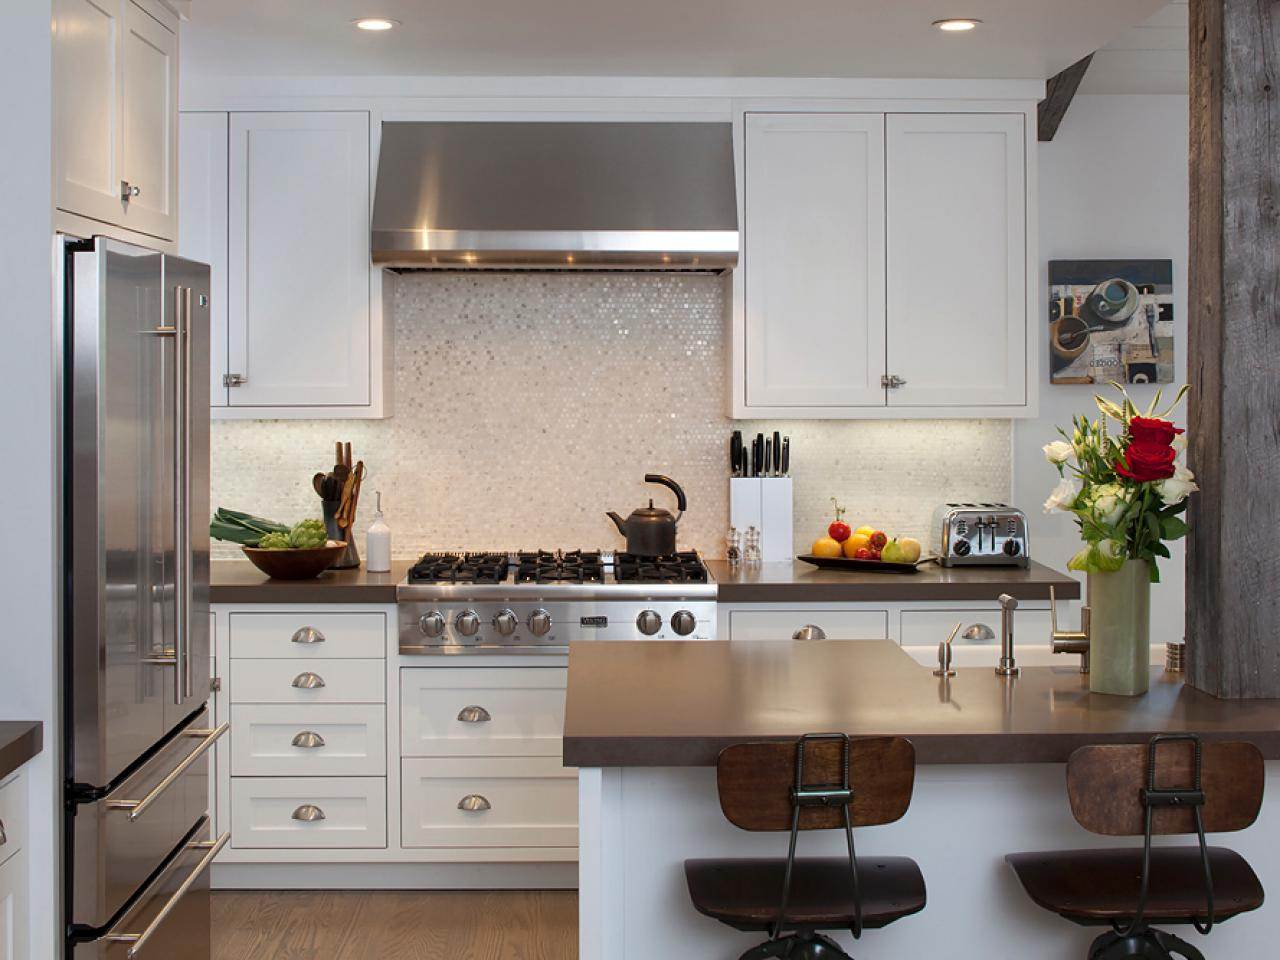 Self-Adhesive Backsplashes: Pictures & Ideas From HGTV | HGTV